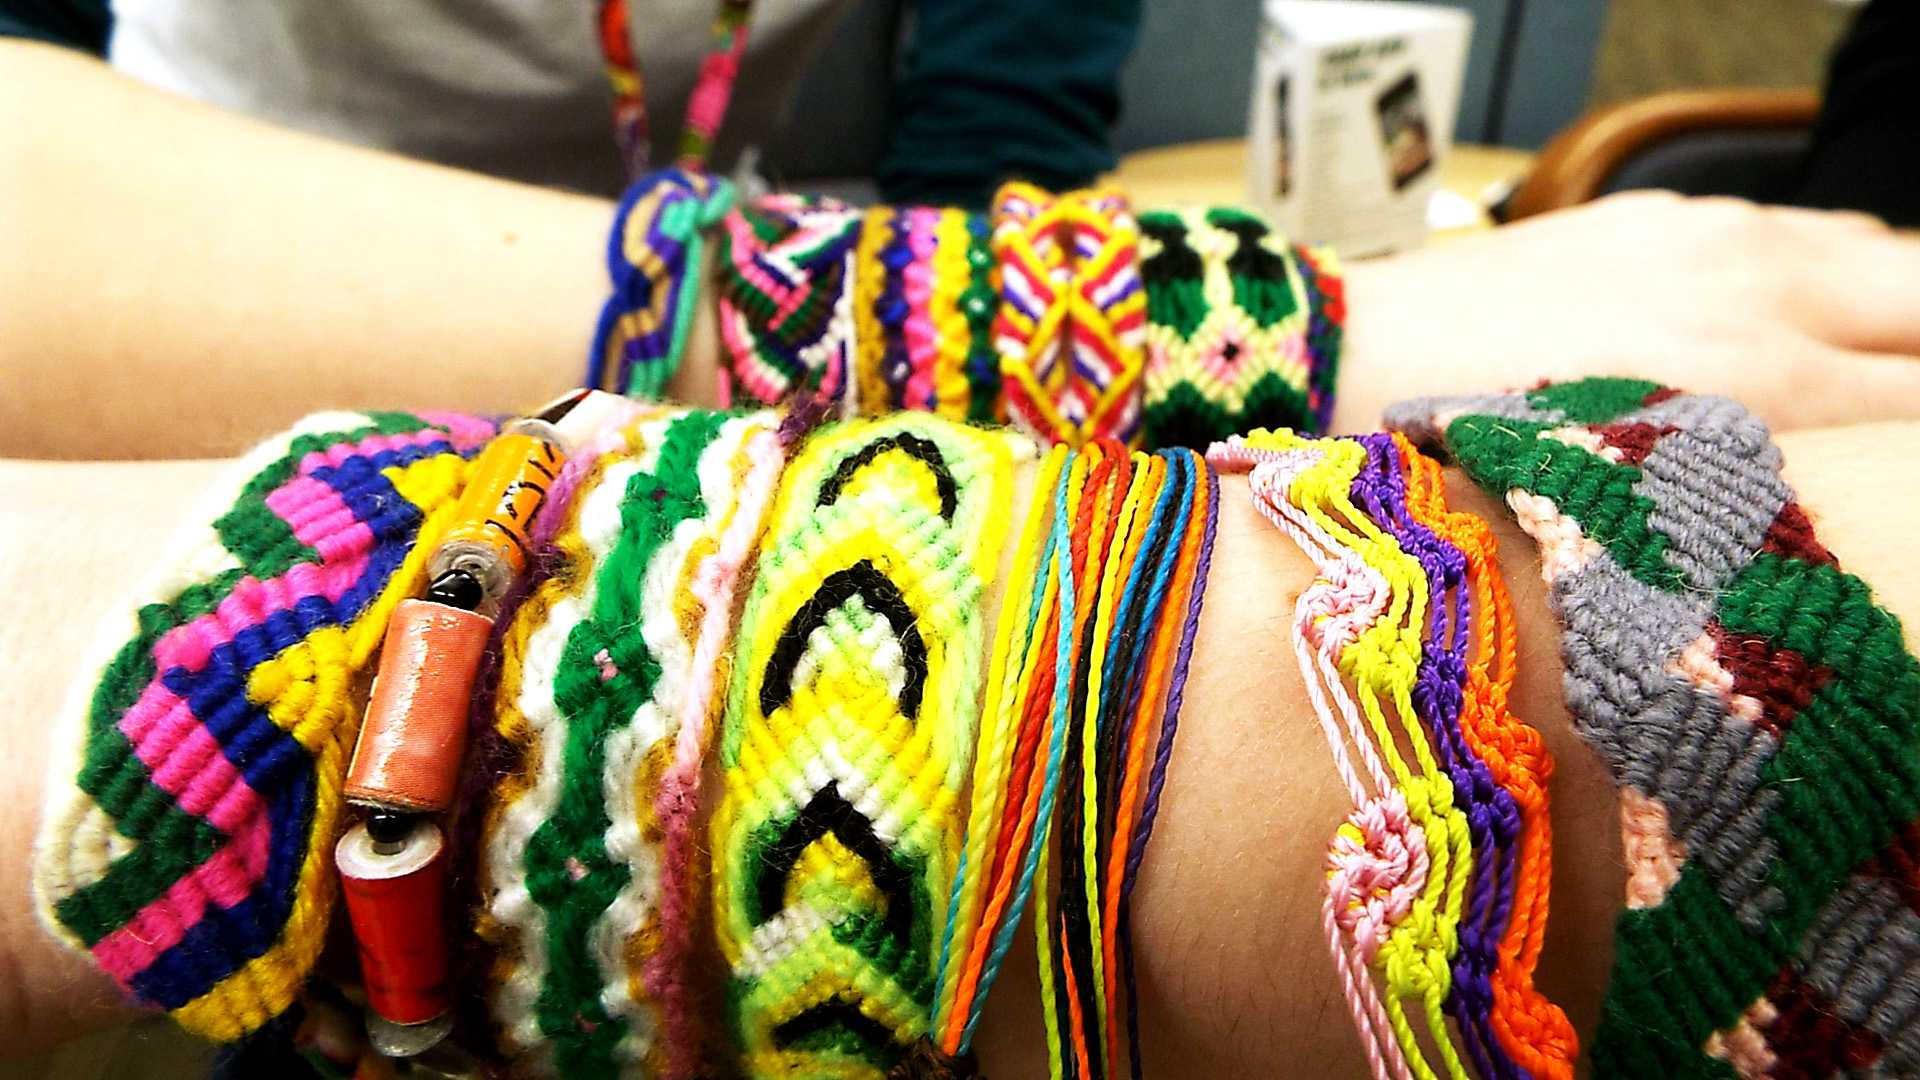 Pulsera bracelets that are being sold in the offices of Student Life at the College of DuPage on Feb. 23.